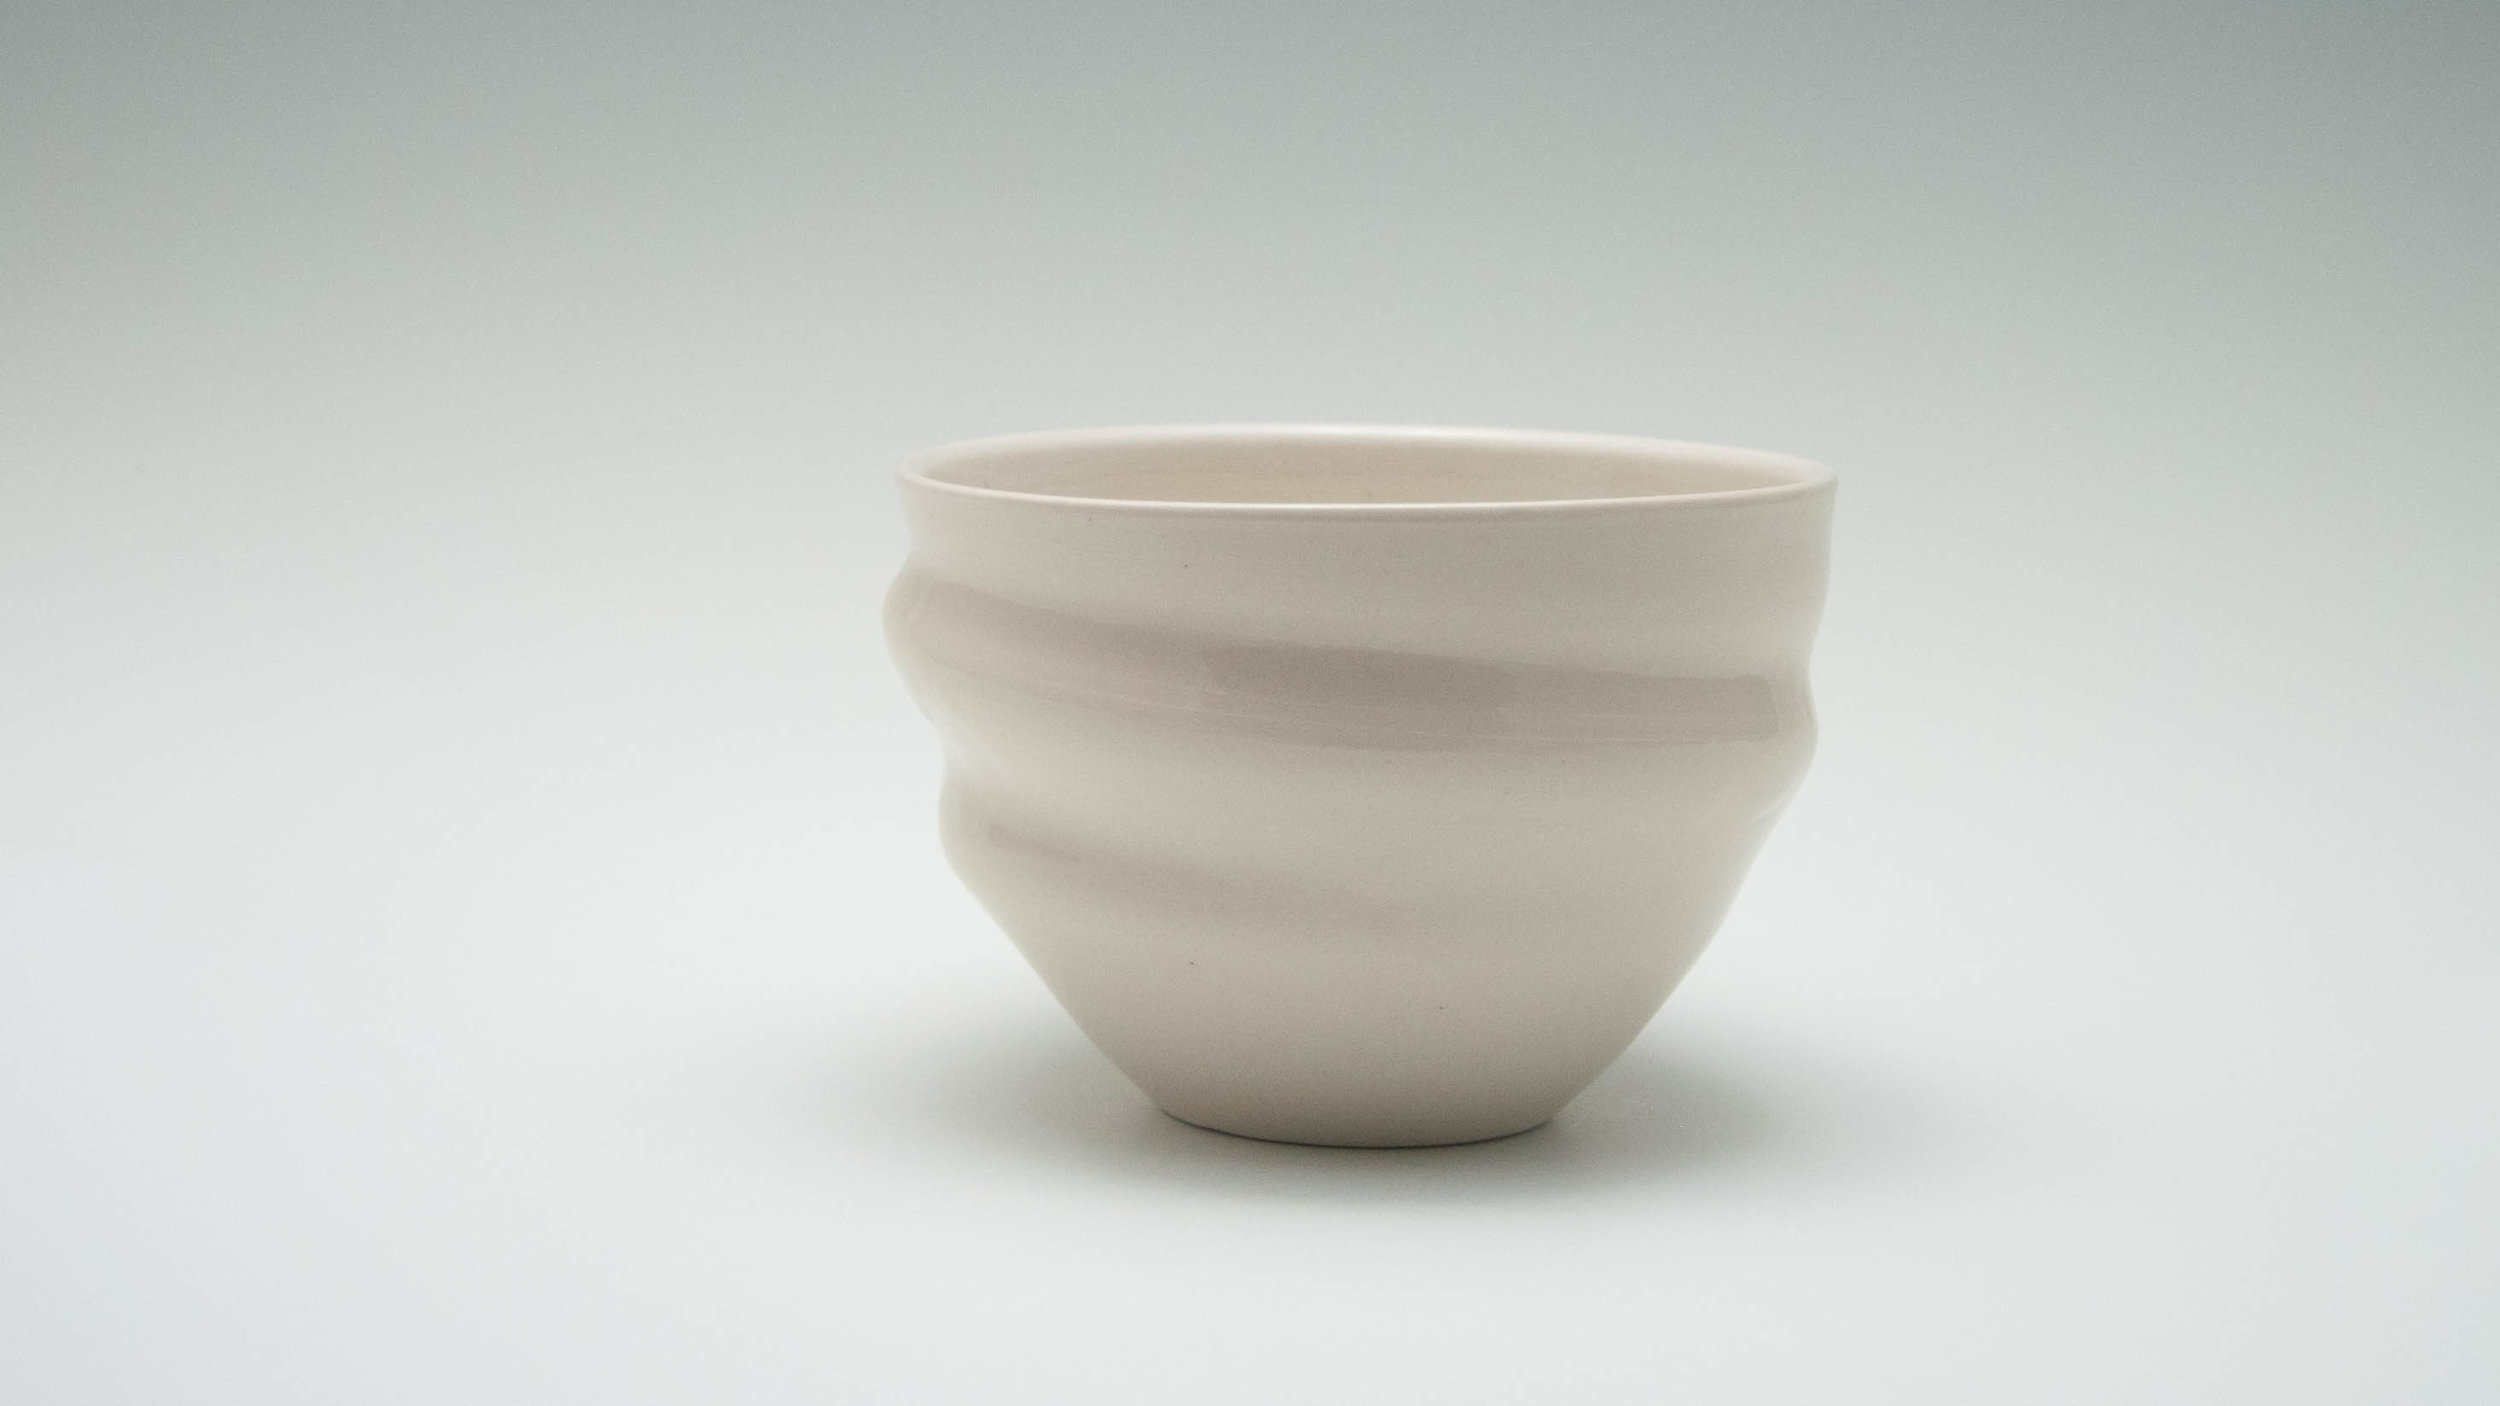 Copy of Bowl, Kyle Day